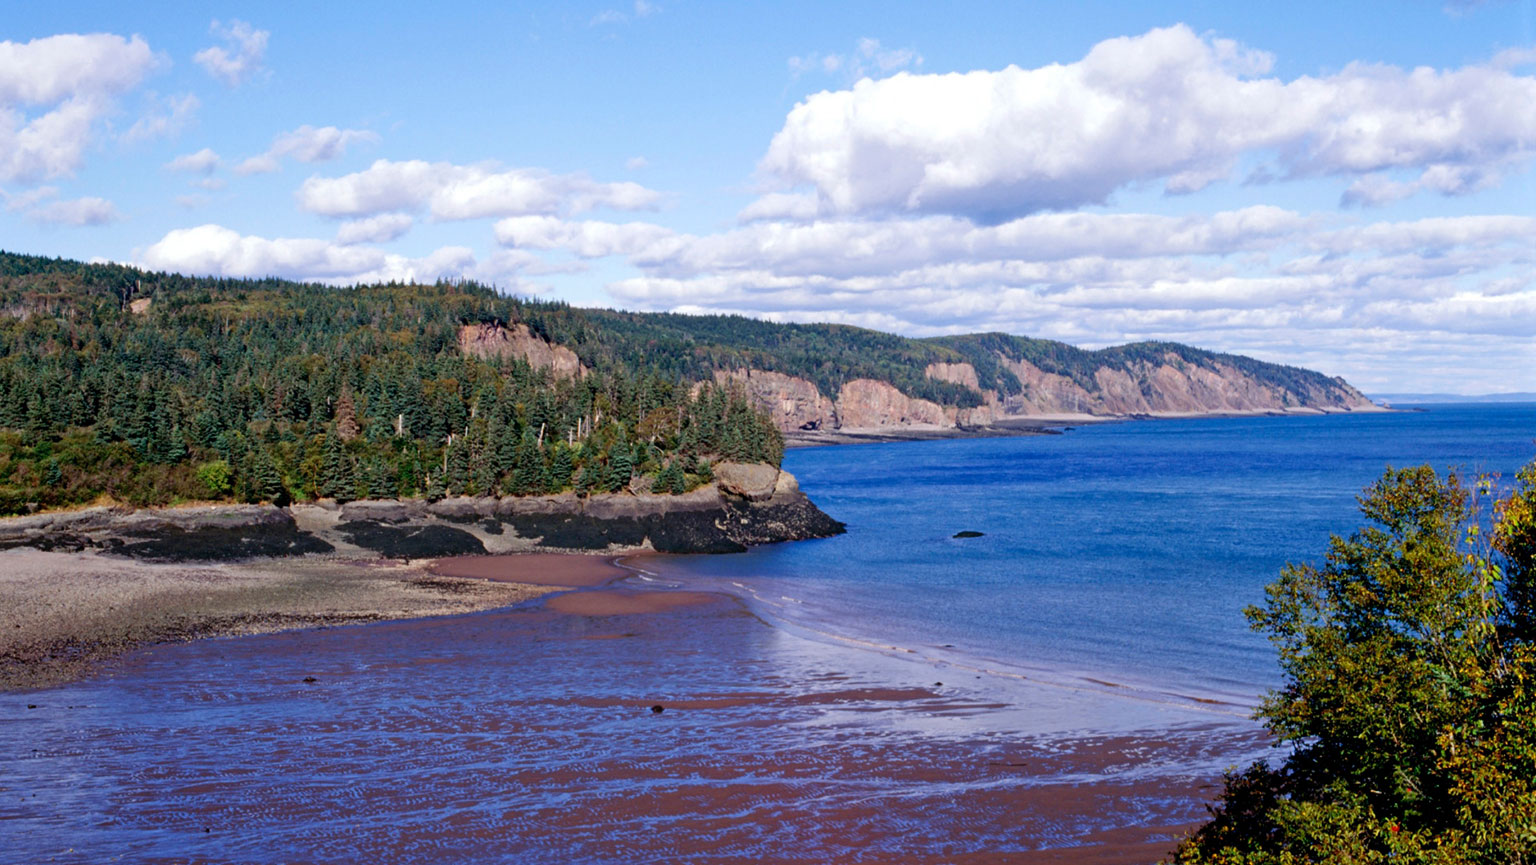 Bay of fundy inexorable cycle of tides the great courses for Minimalist house bay of fundy